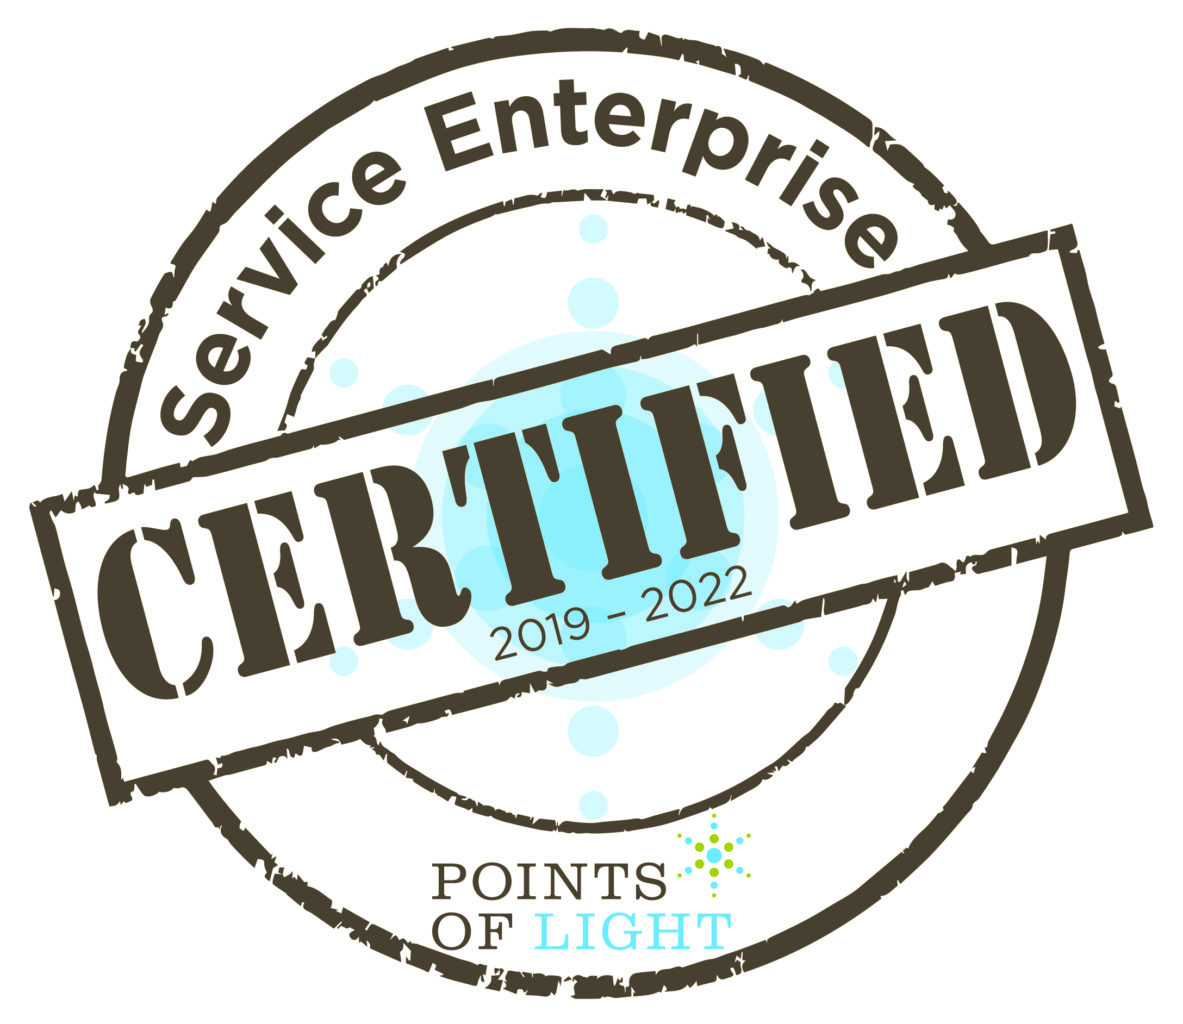 Service Enterprise certified, 2019 to 2022